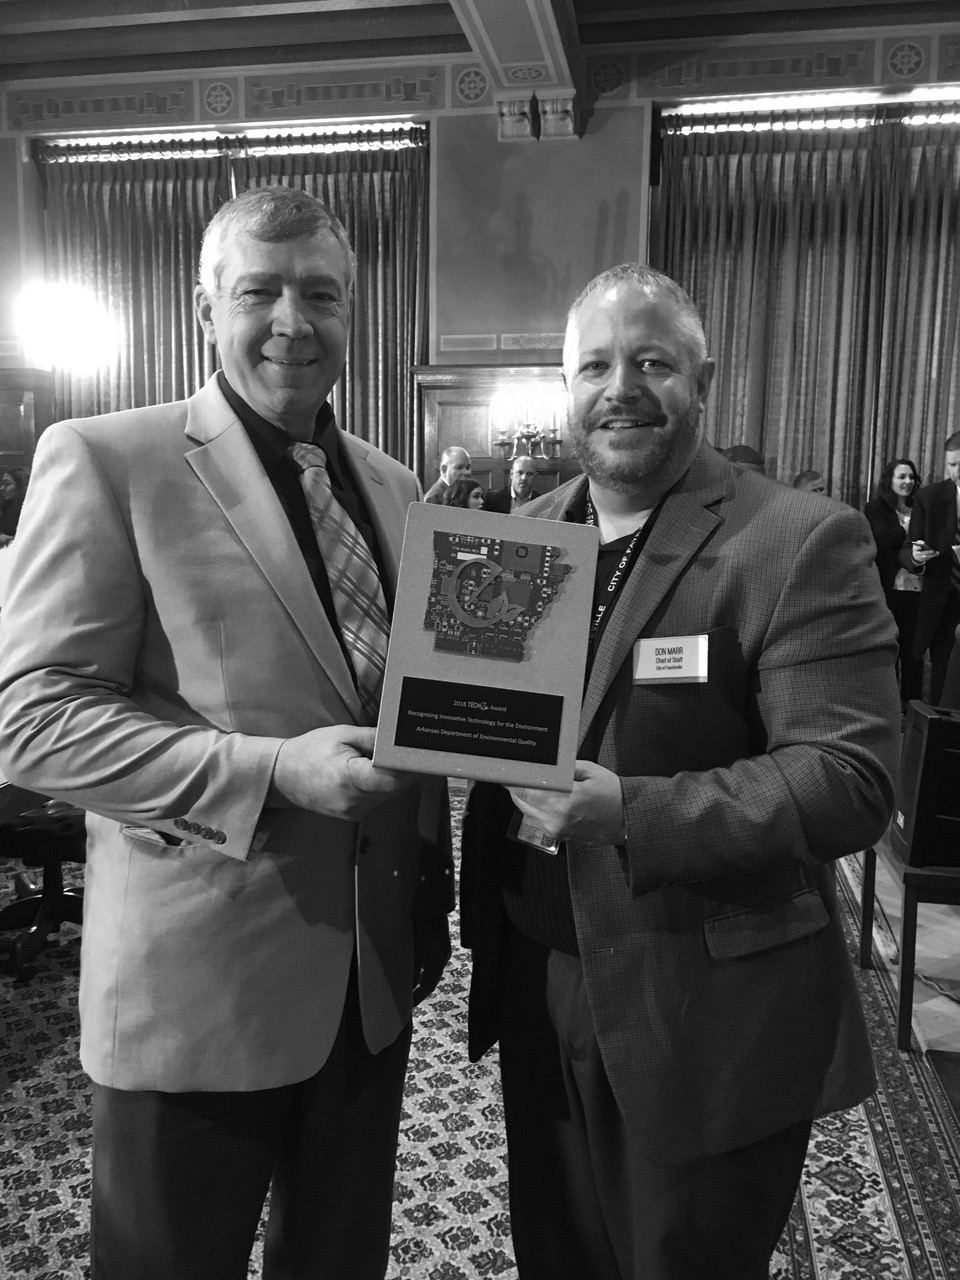 A BIG Win For Fayetteville.  Fayetteville's Chief of Staff Don Marr shares the TECHe Award with BlueInGreen Technical Services Manager Billy Ammons.